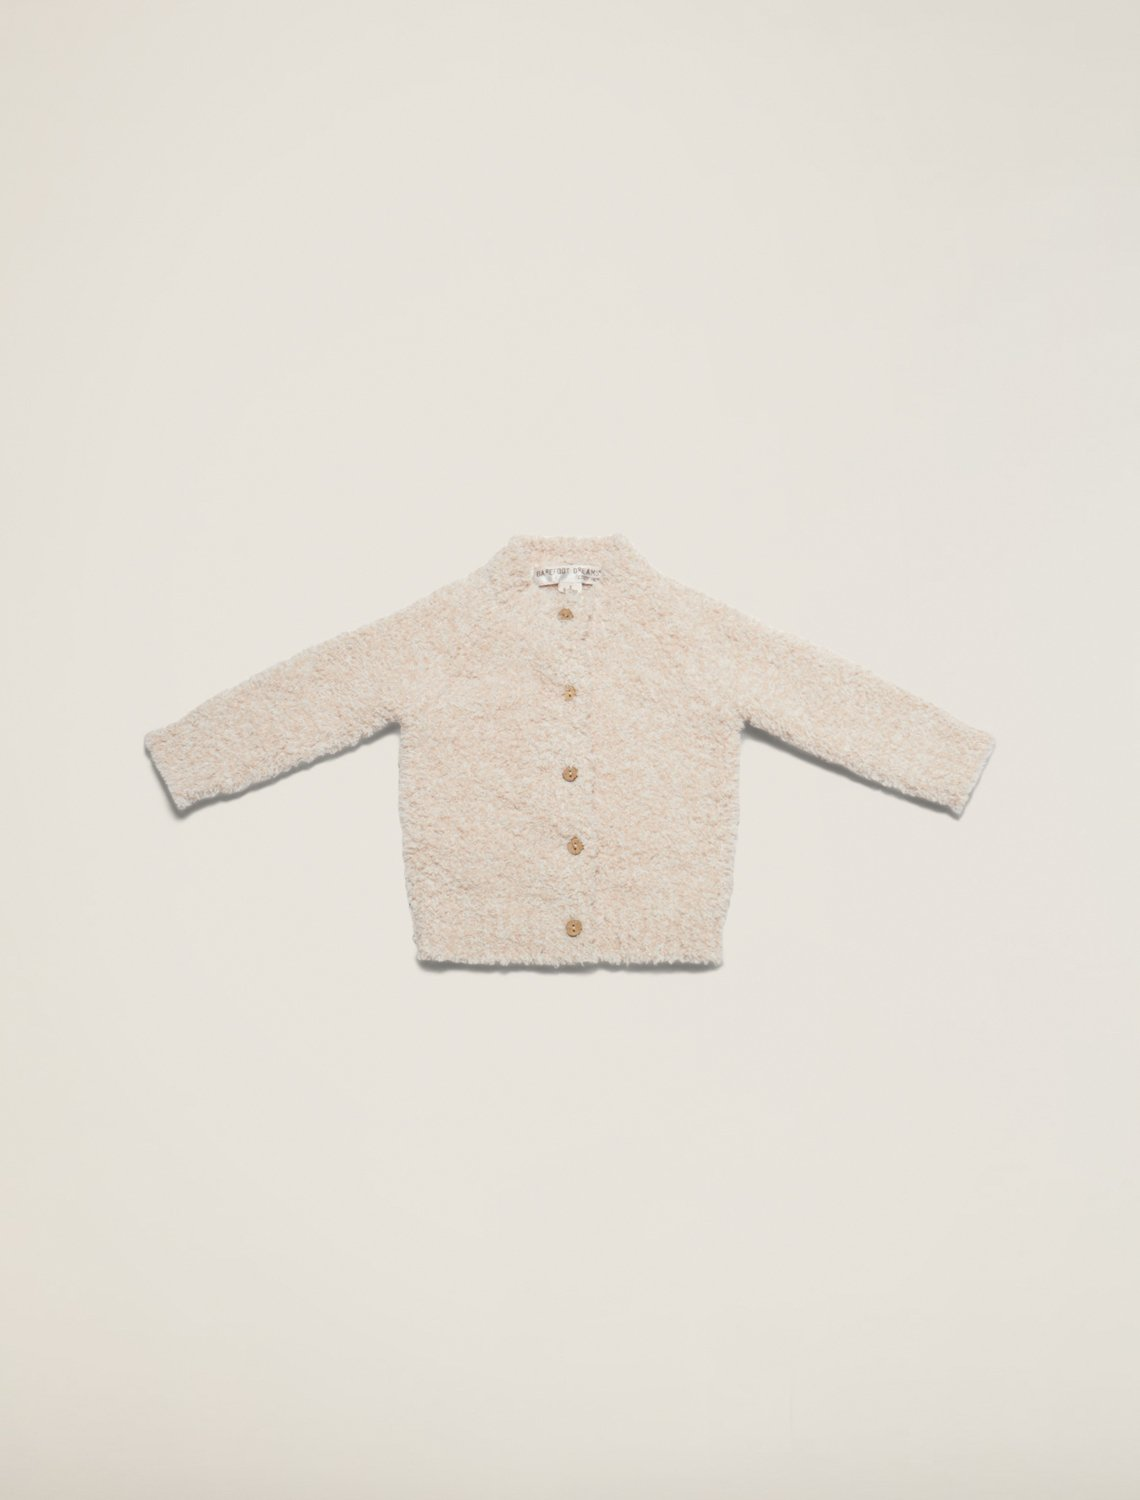 815 CC INFANT HEATHERED CARDIGAN